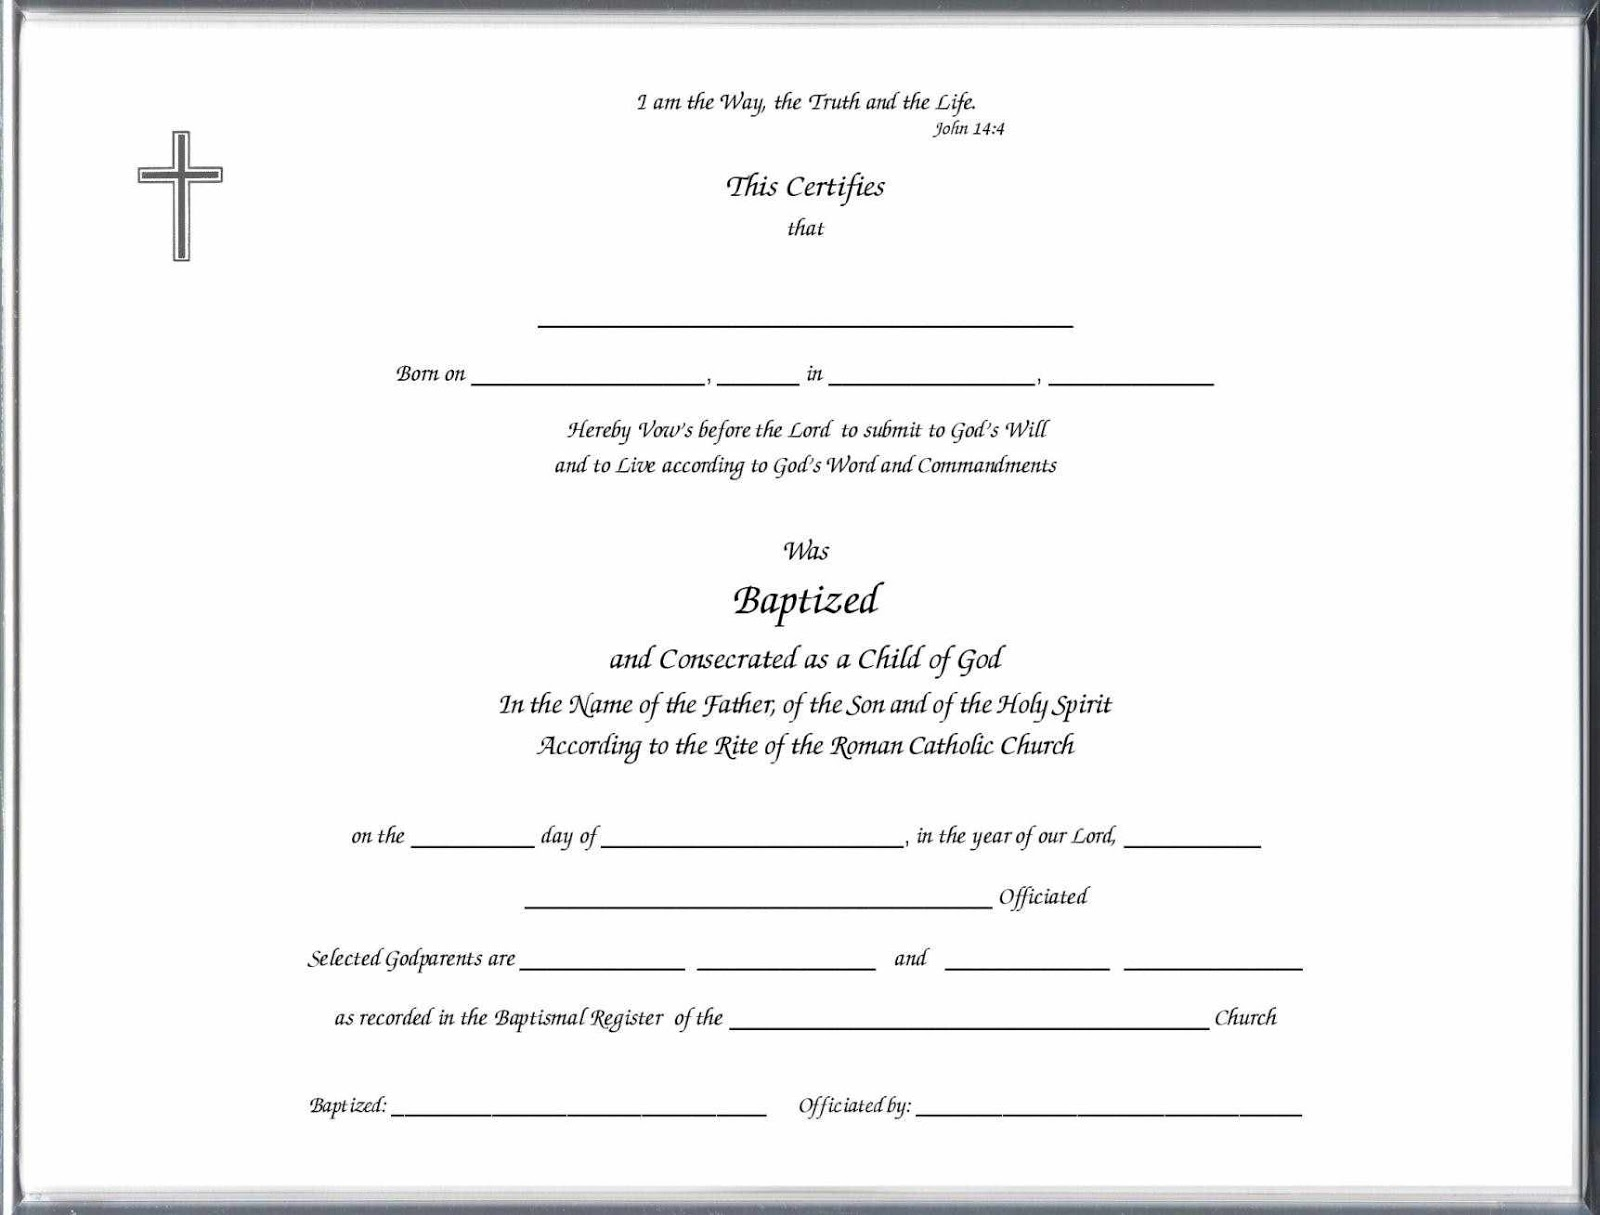 Baptism certificate template uk choice image certificate for The request contains no certificate template information